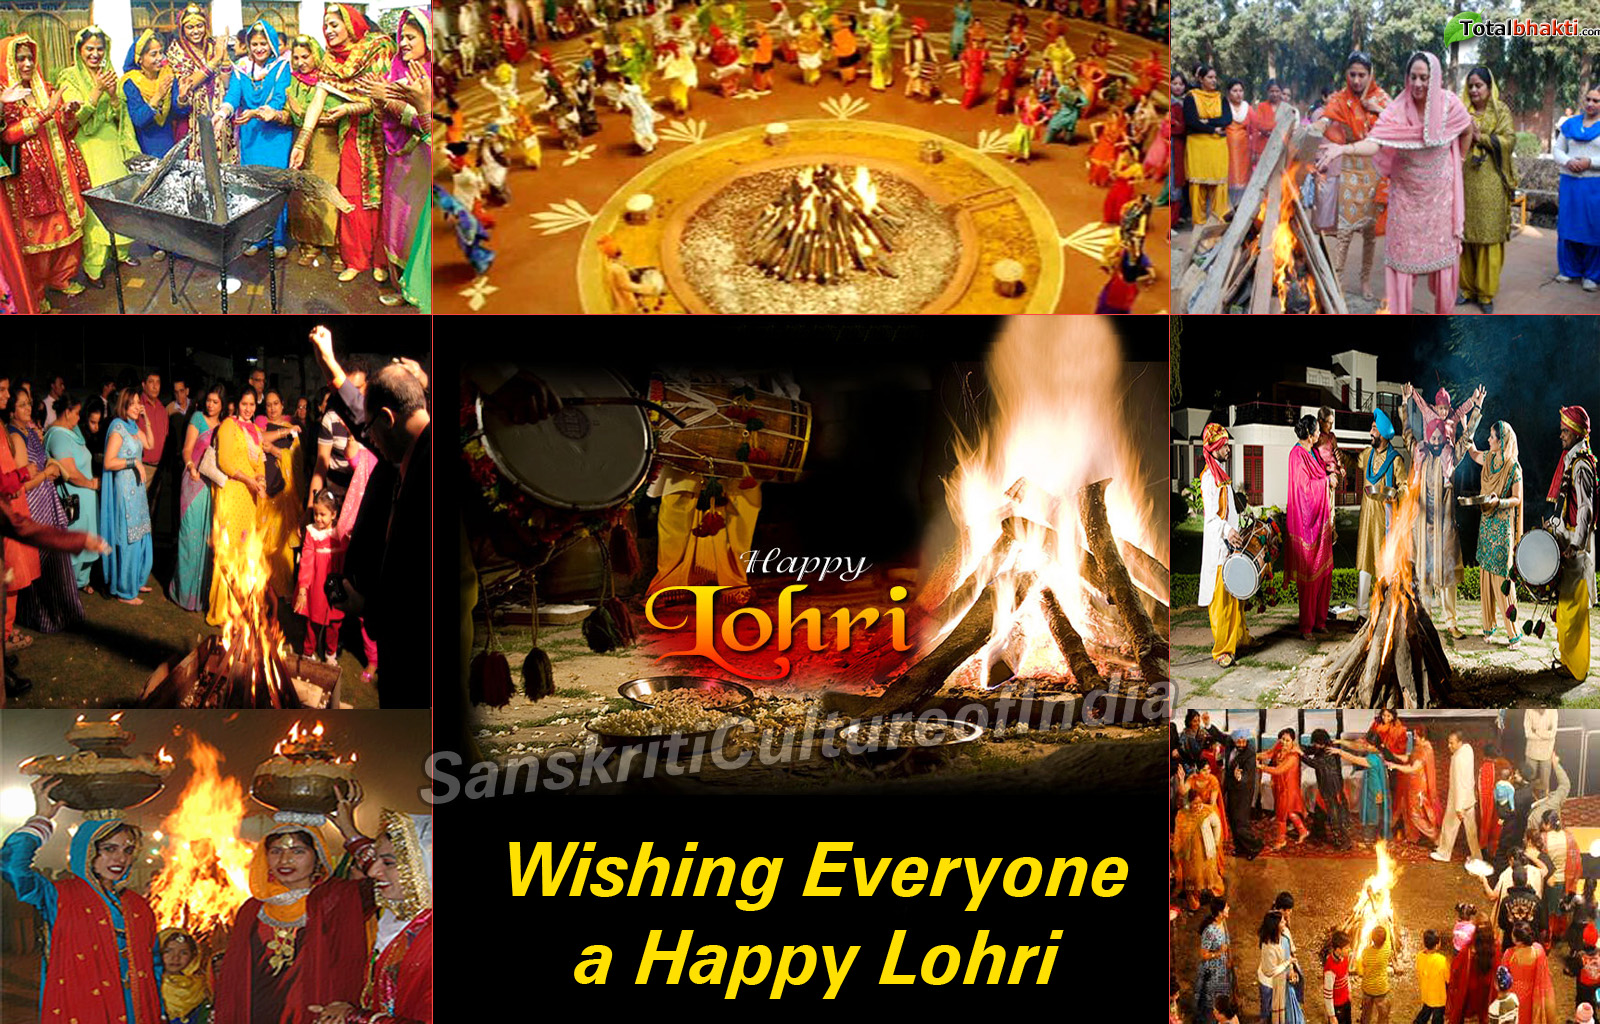 Lohri: The Bonfire Festival